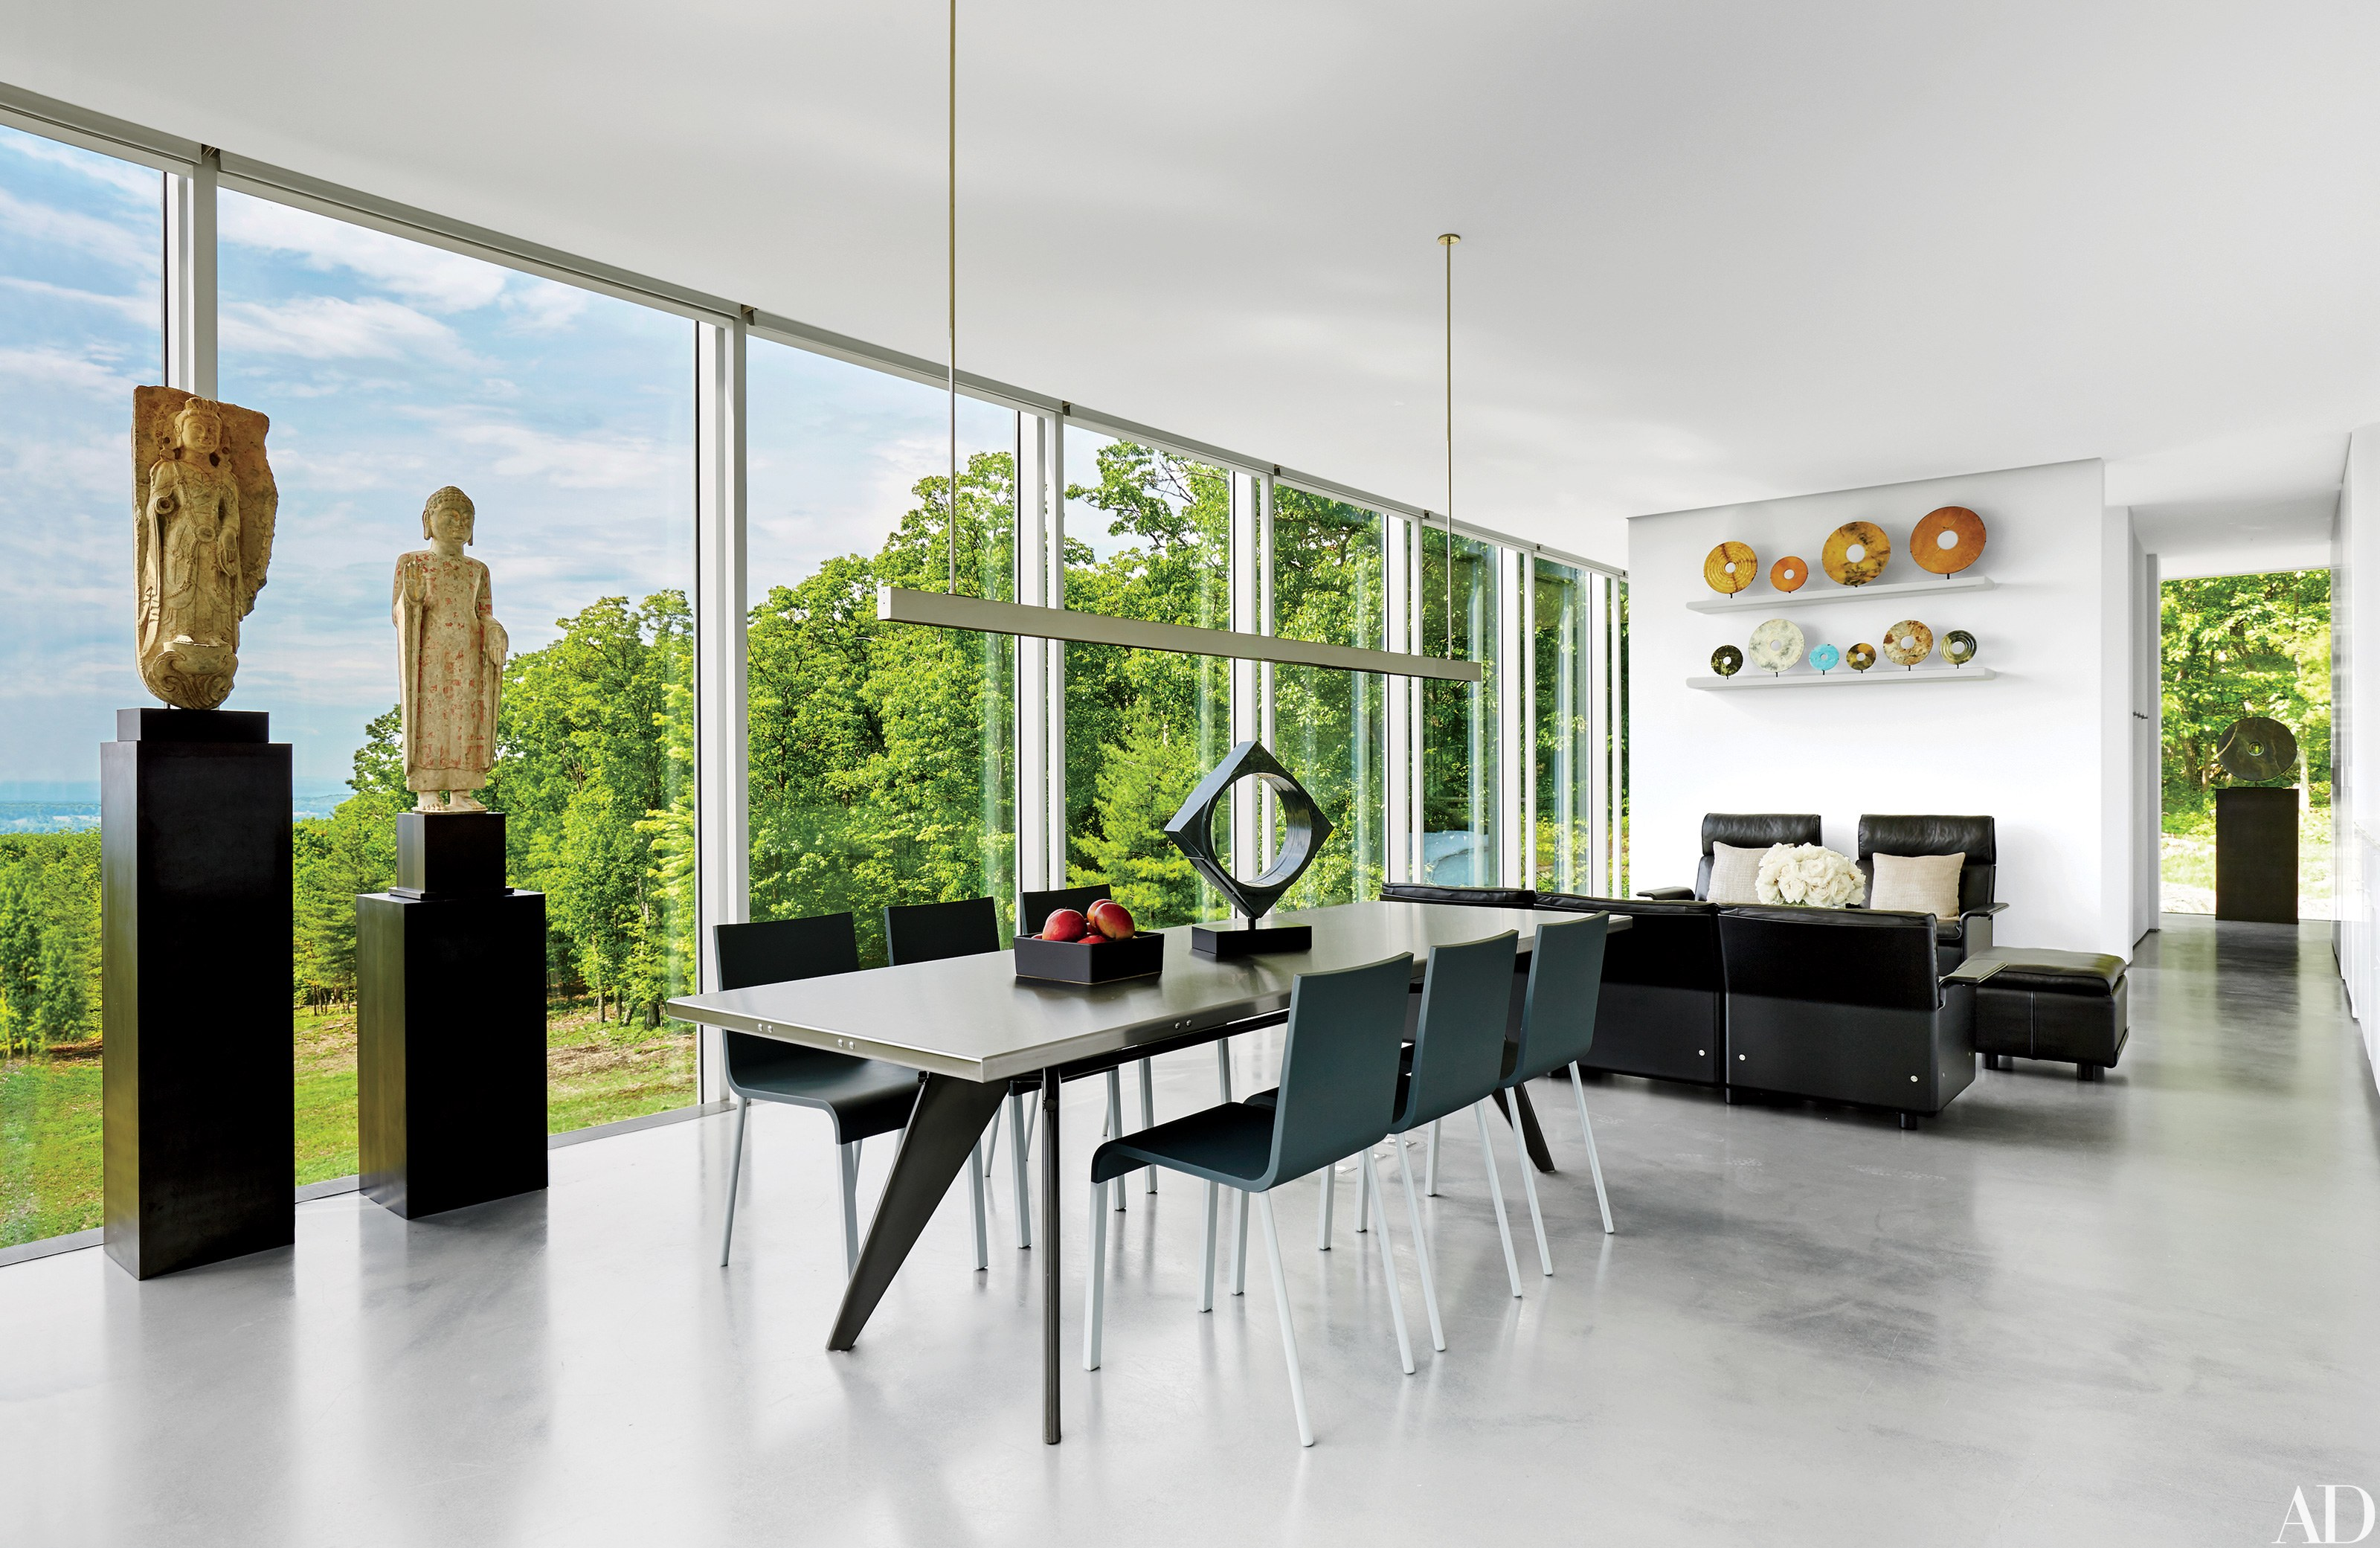 contemporary interior design: 13 striking and sleek rooms photos |  architectural digest KIGLZLV